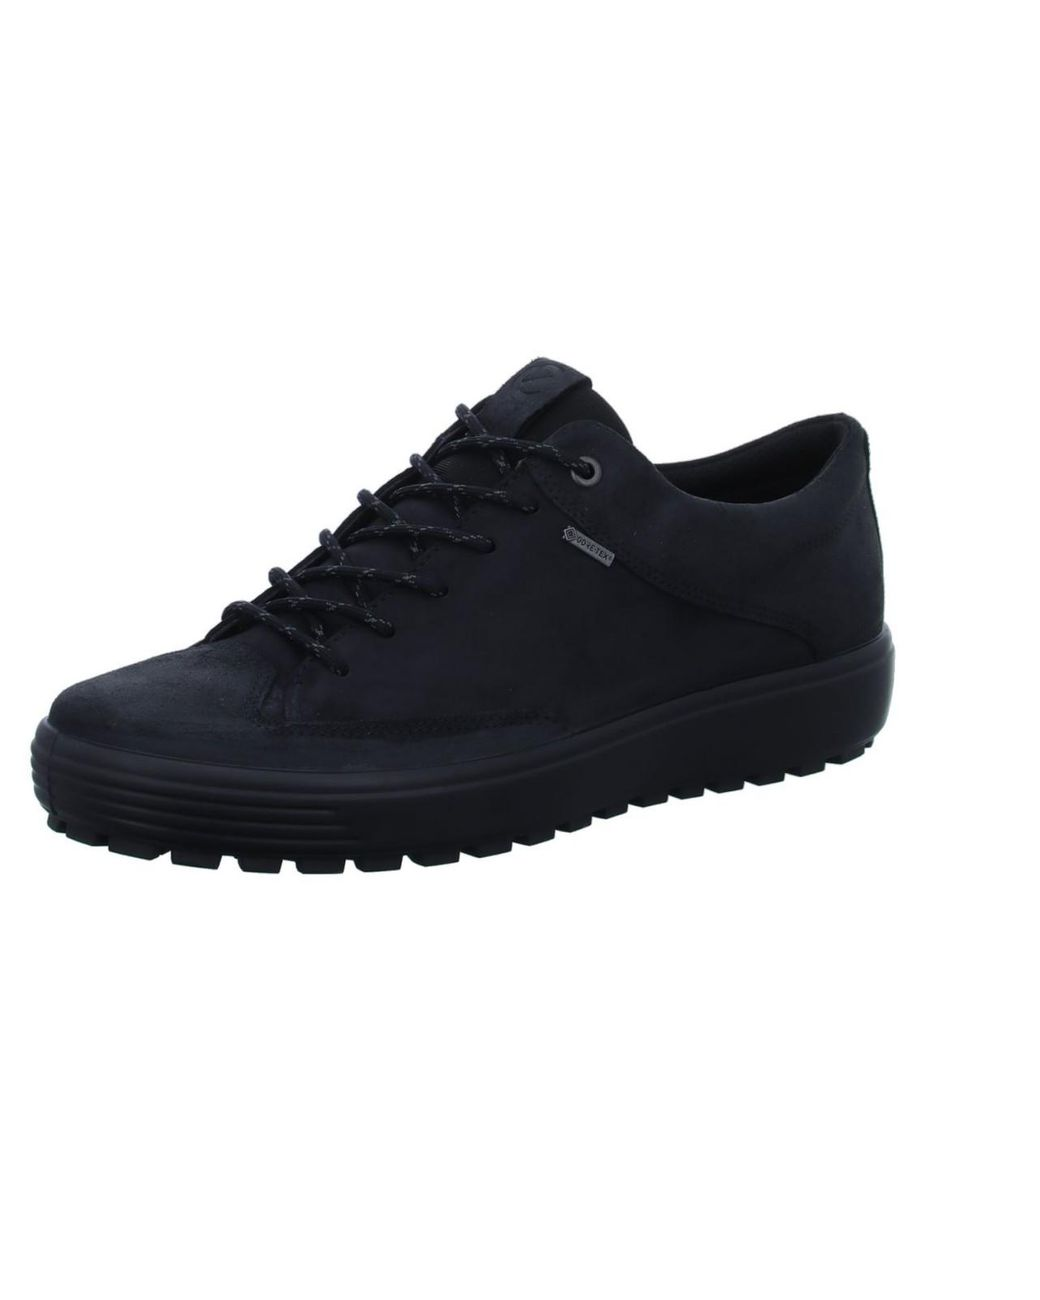 Ecco Suede Trainers Black Soft 7 Tred